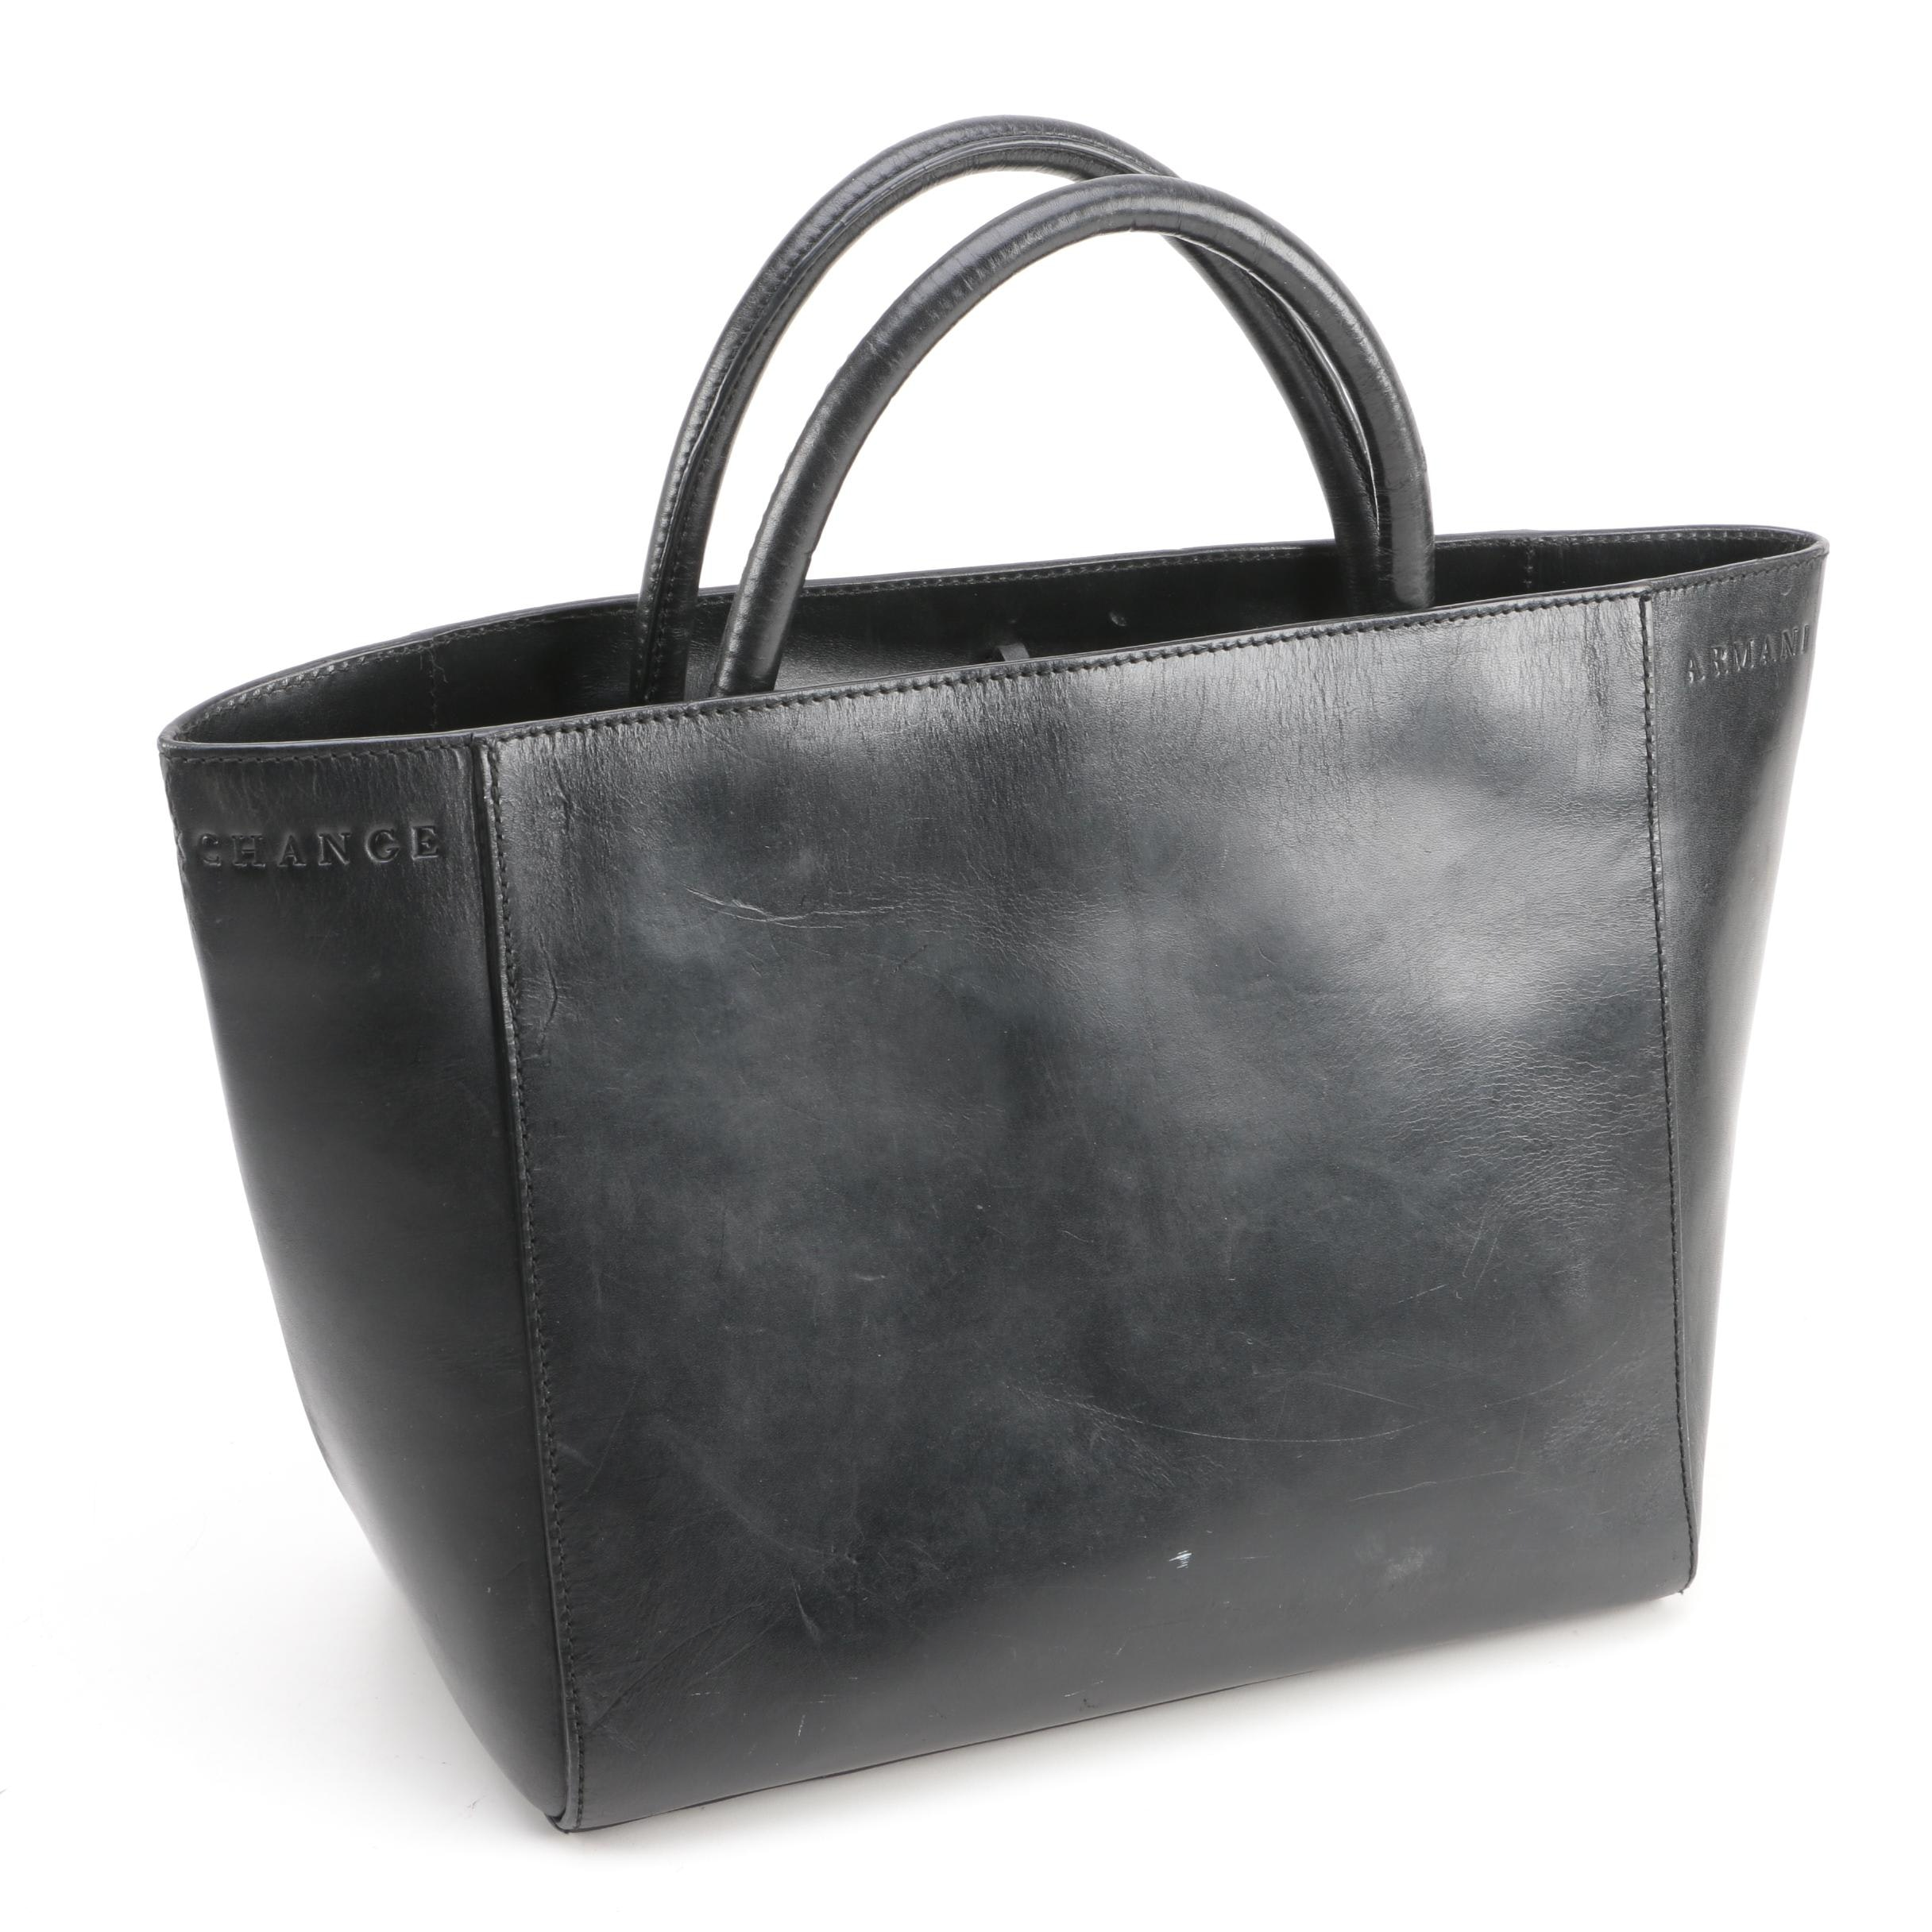 Armani Exchange Black Leather Tote